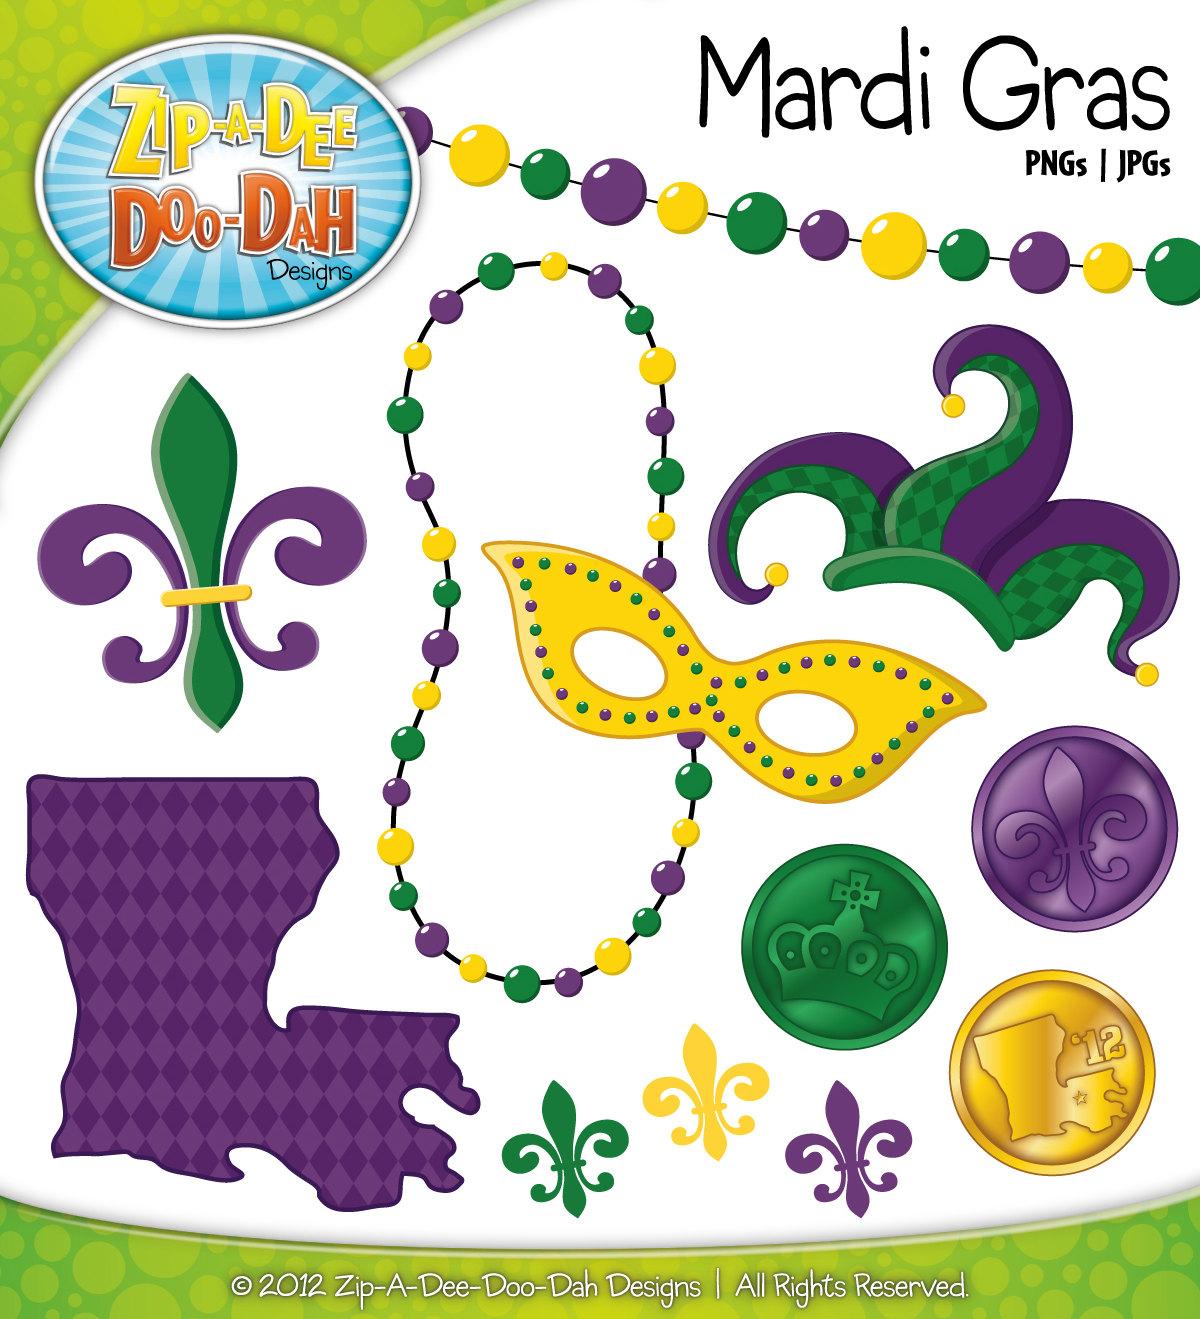 Mardi Gras Vector Art